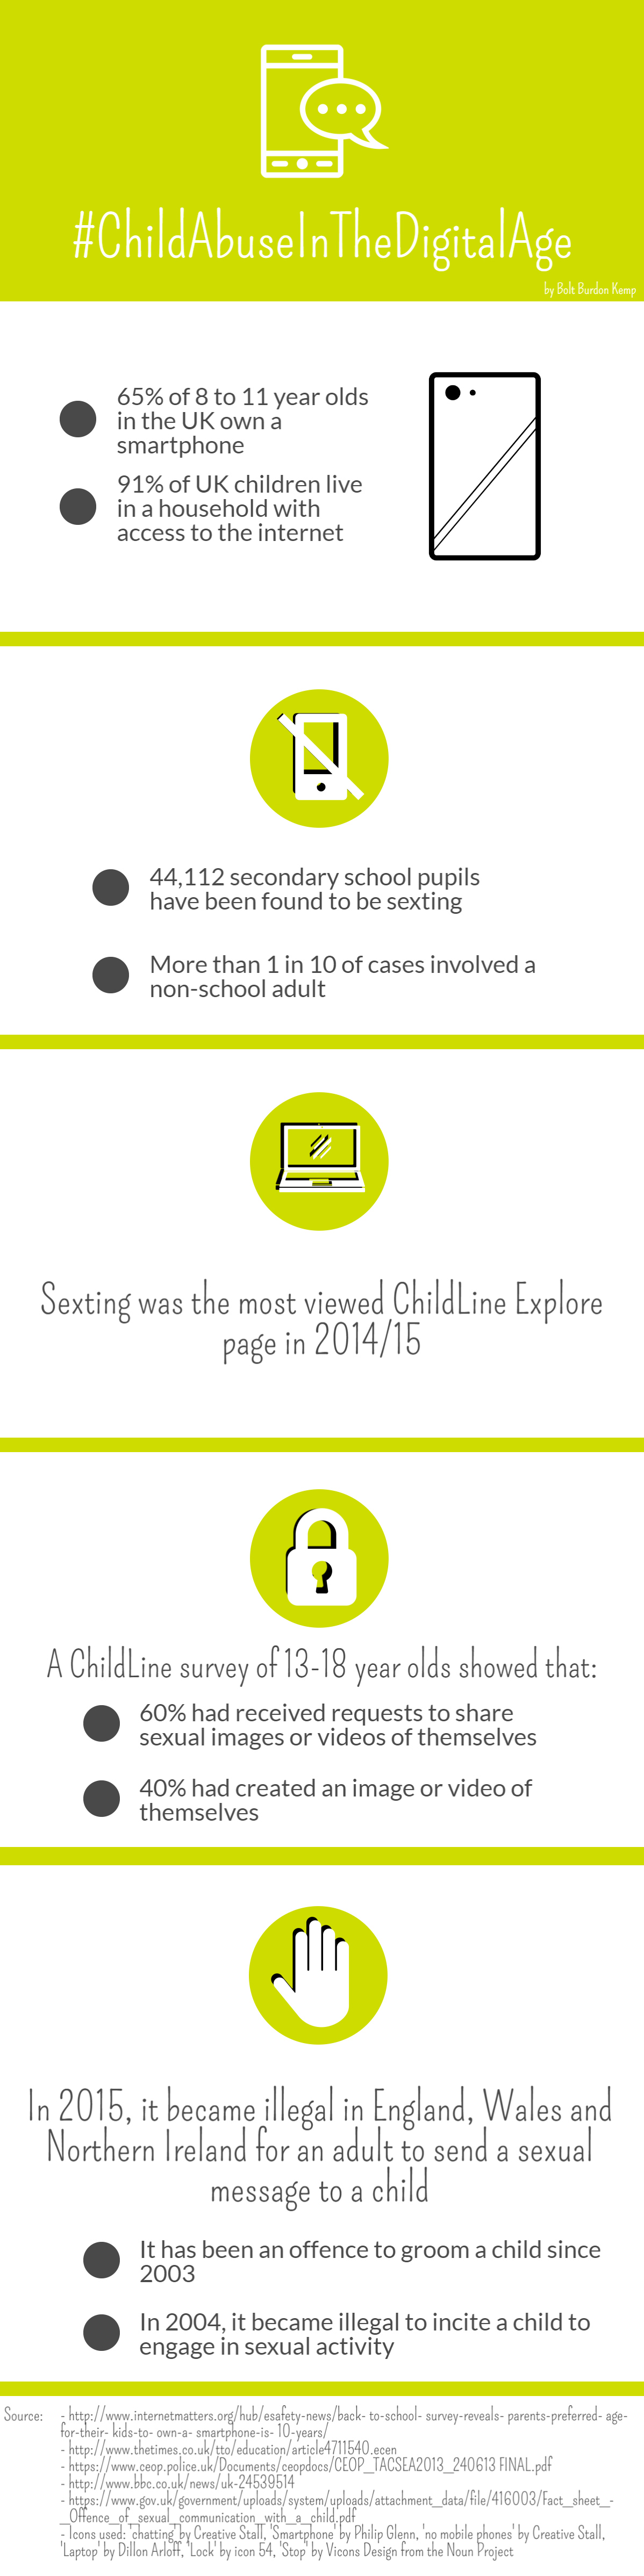 Bolt Burdon Kemp Child Abuse In The Digital Age Infographic